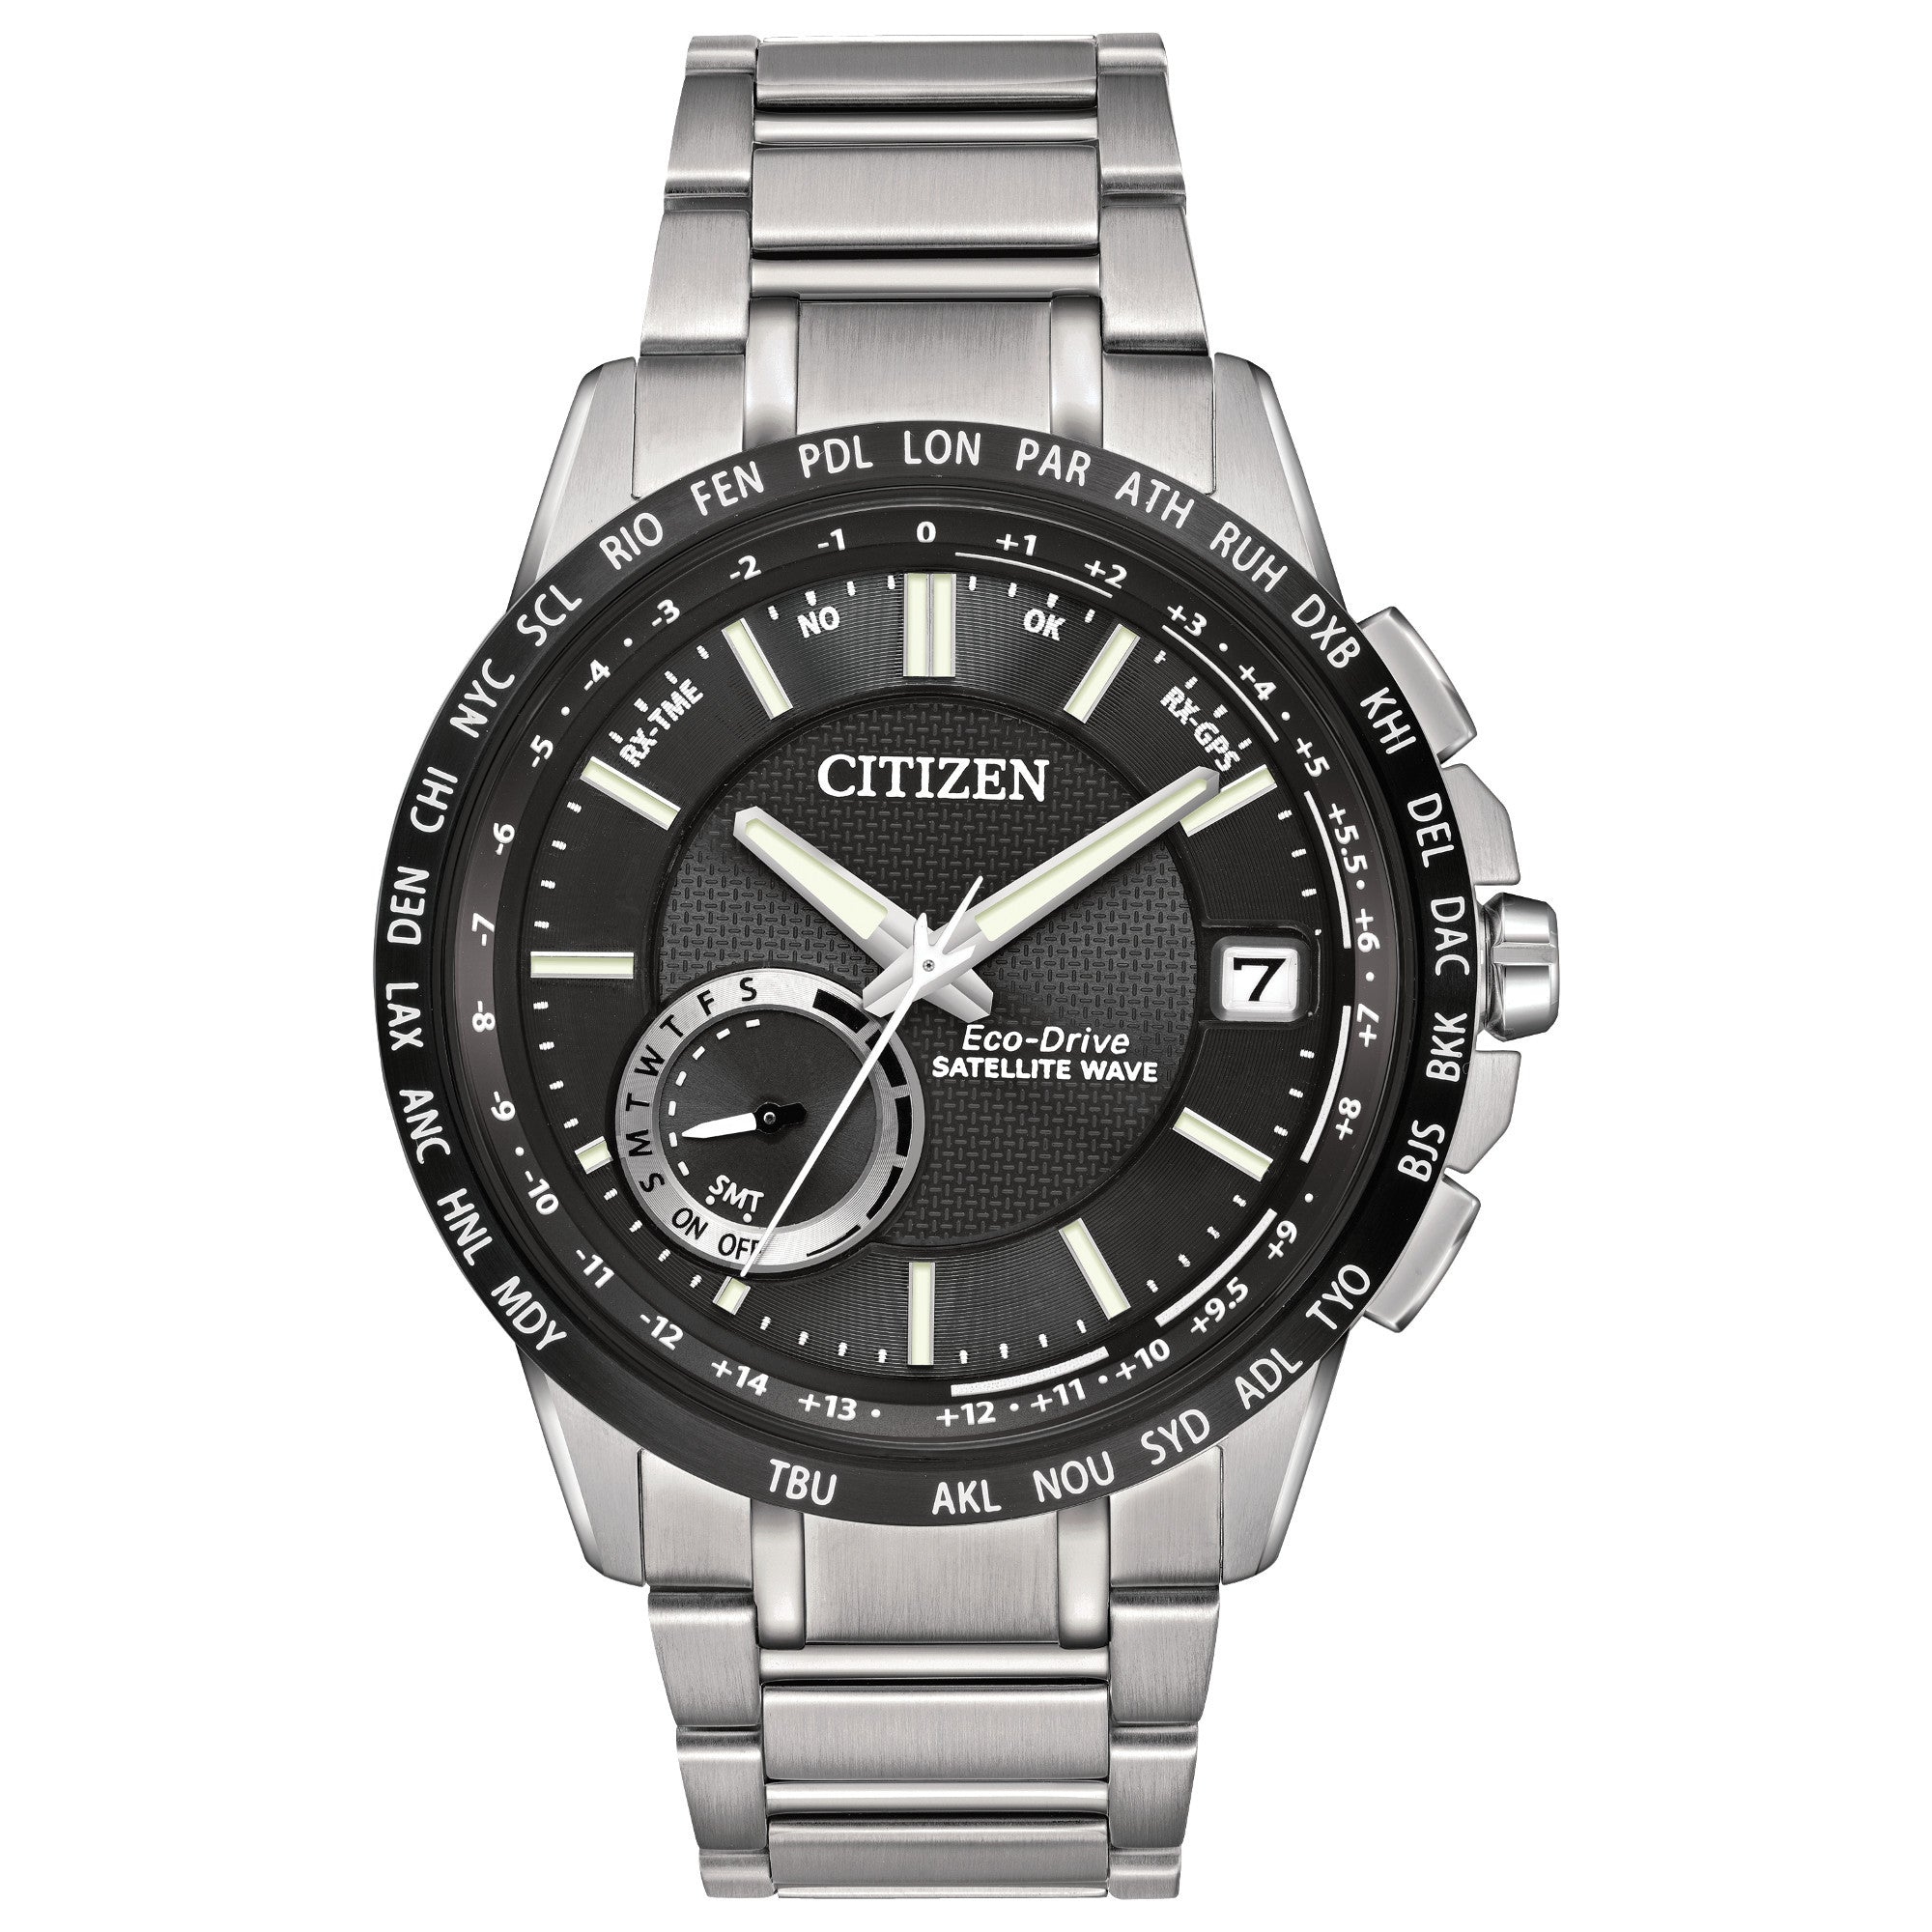 CITIZEN SATELLITE WAVE - WORLD TIME GPS CC3005-85E